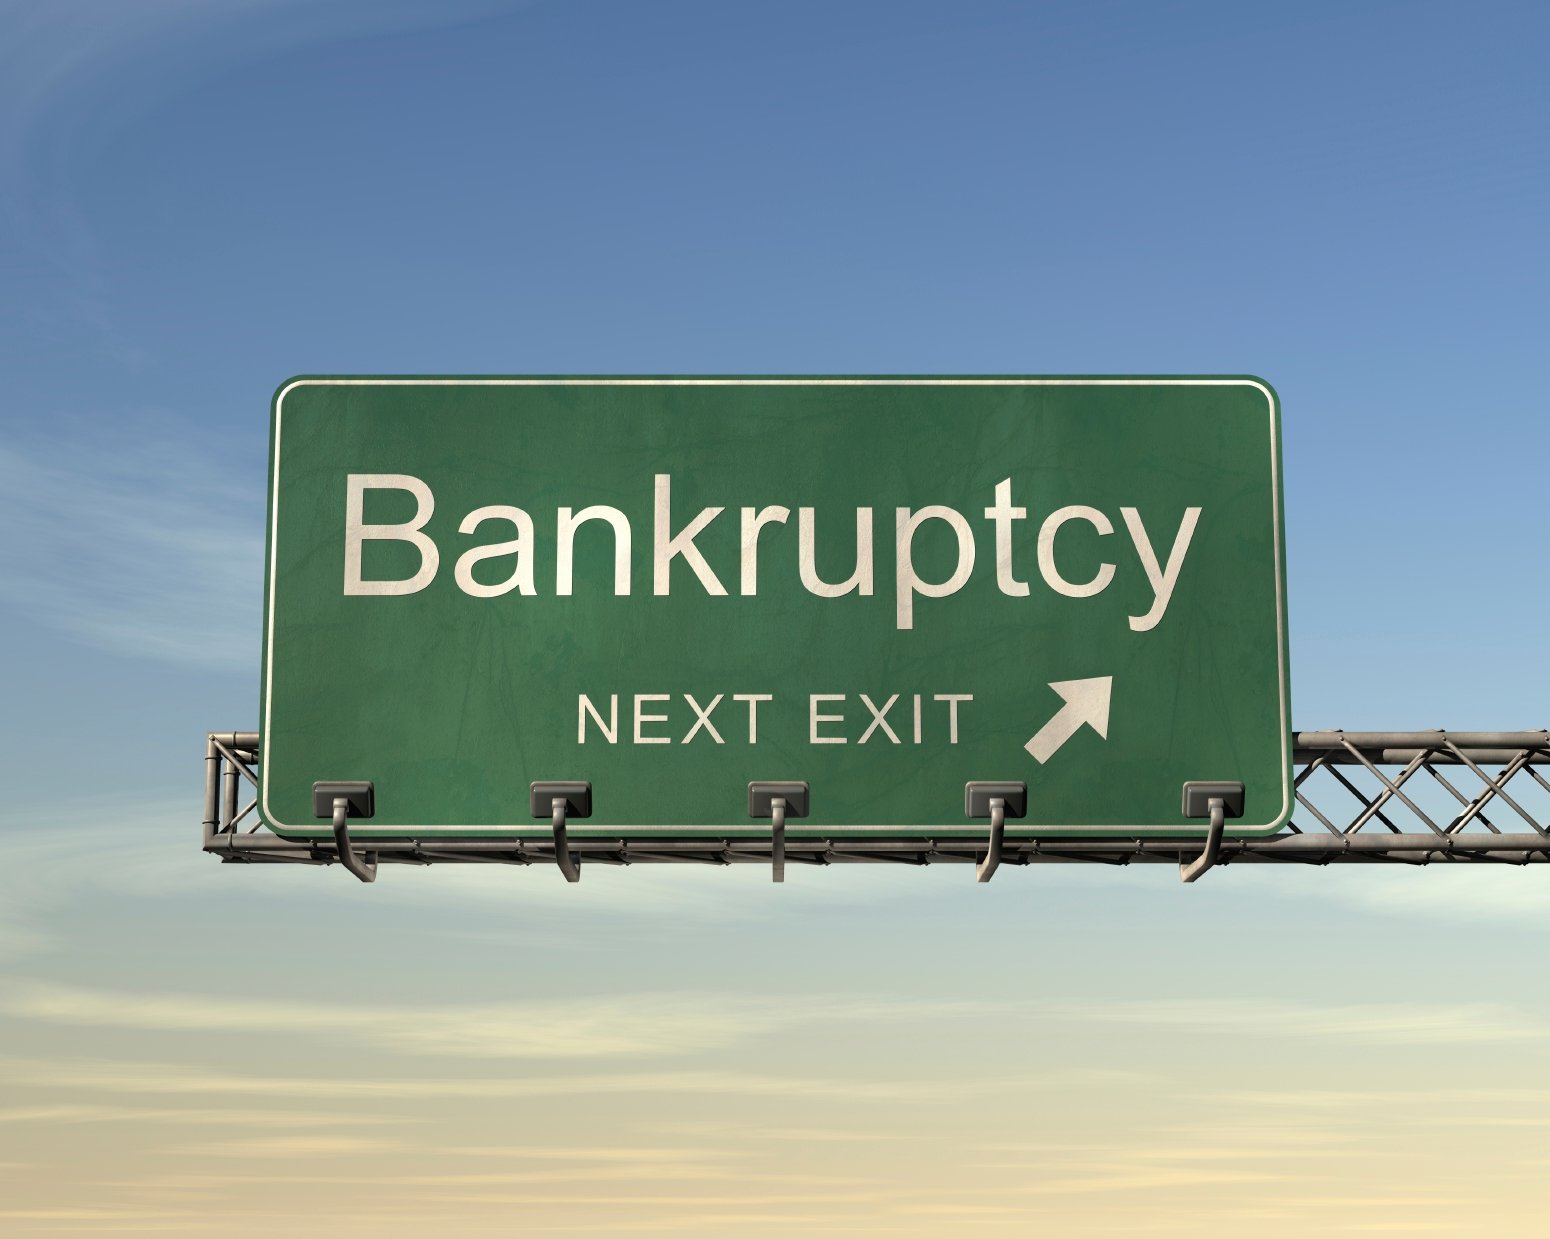 bankruptcy act The repeal [of the bankruptcy act] made by section 401(a) of this act does not affect any right of a referee in bankruptcy, united states bankruptcy judge, or survivor of a referee in bankruptcy or united states bankruptcy judge to receive any annuity or other payment under the civil service retirement laws.